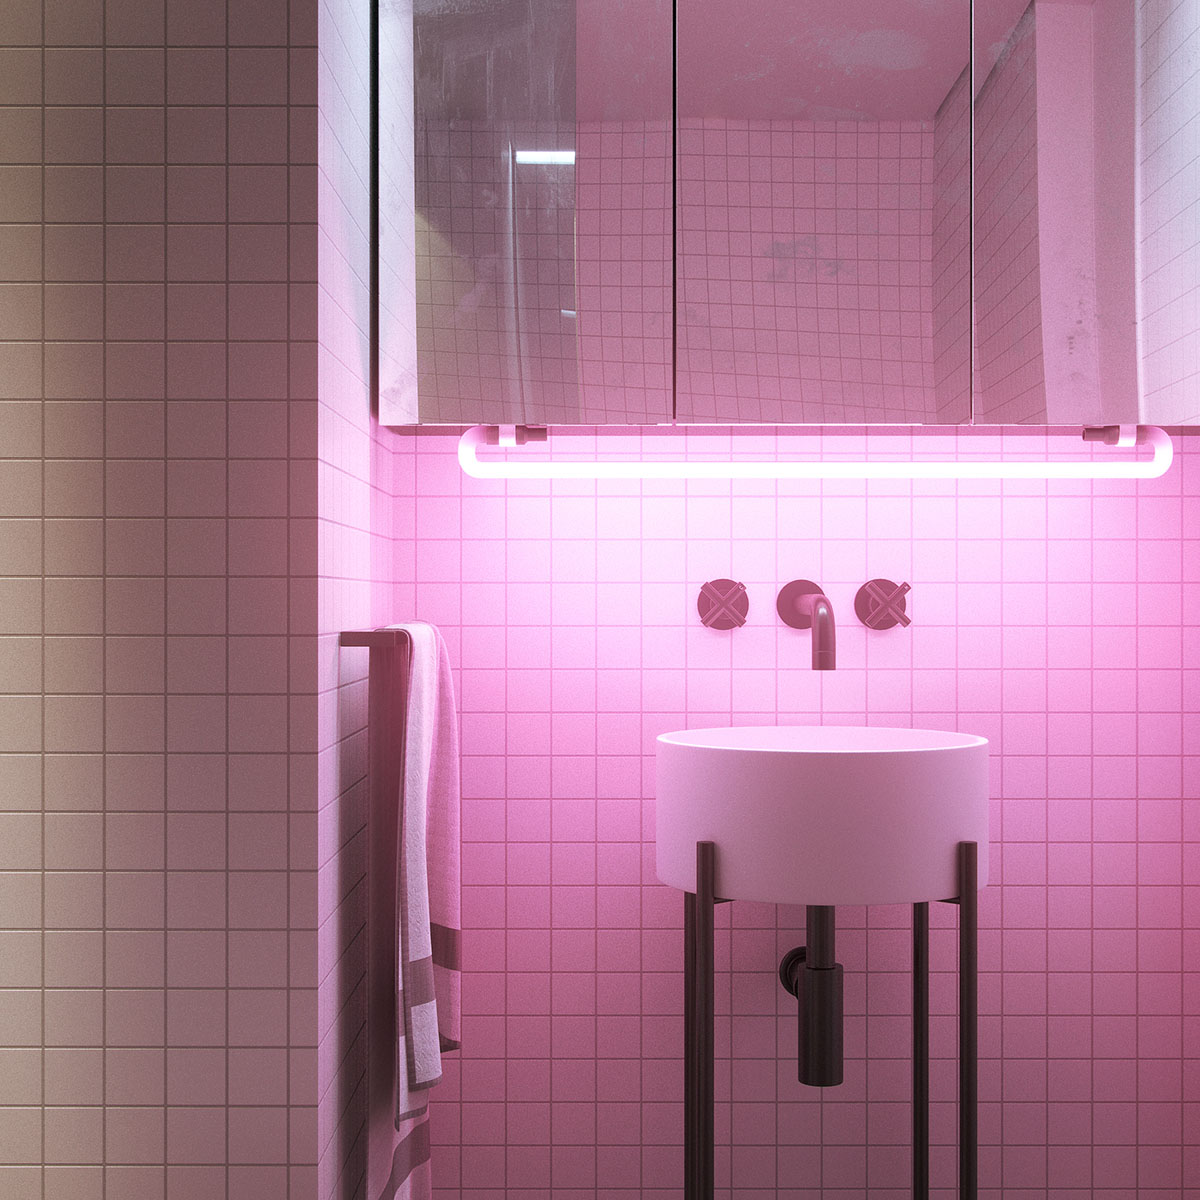 Super compact spaces a minimalist studio apartment under 23 square meters - Compact showers for small spaces minimalist ...